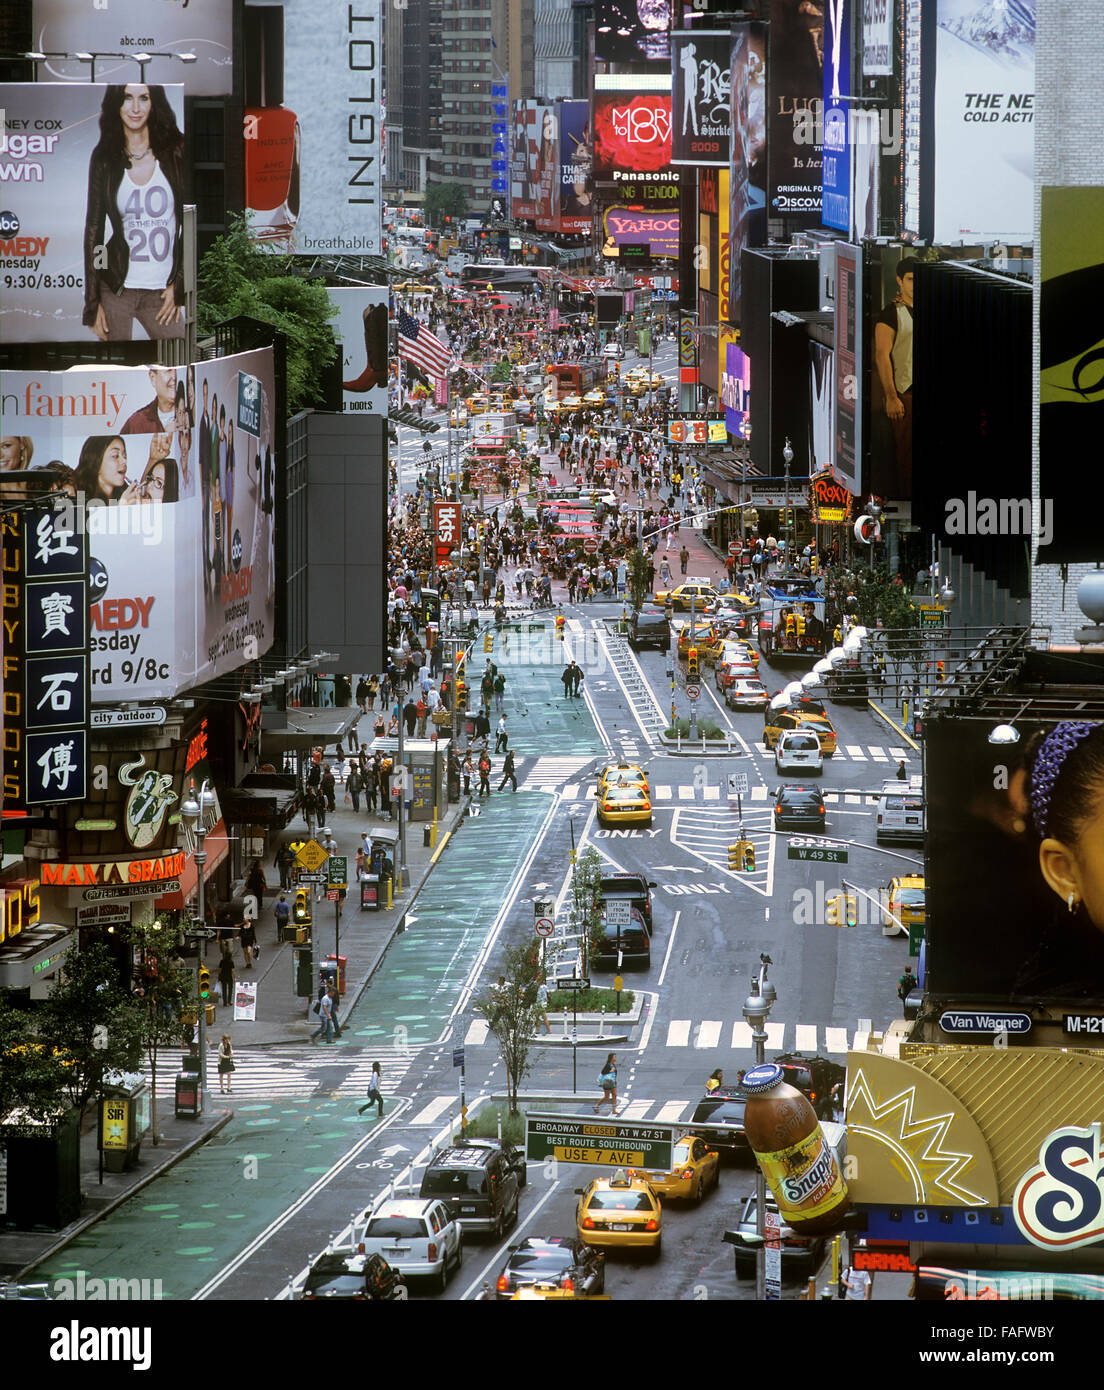 Traffic reduction and pedestrianisation on Broadway, New York City: the green lane is former road, now reserved - Stock Image